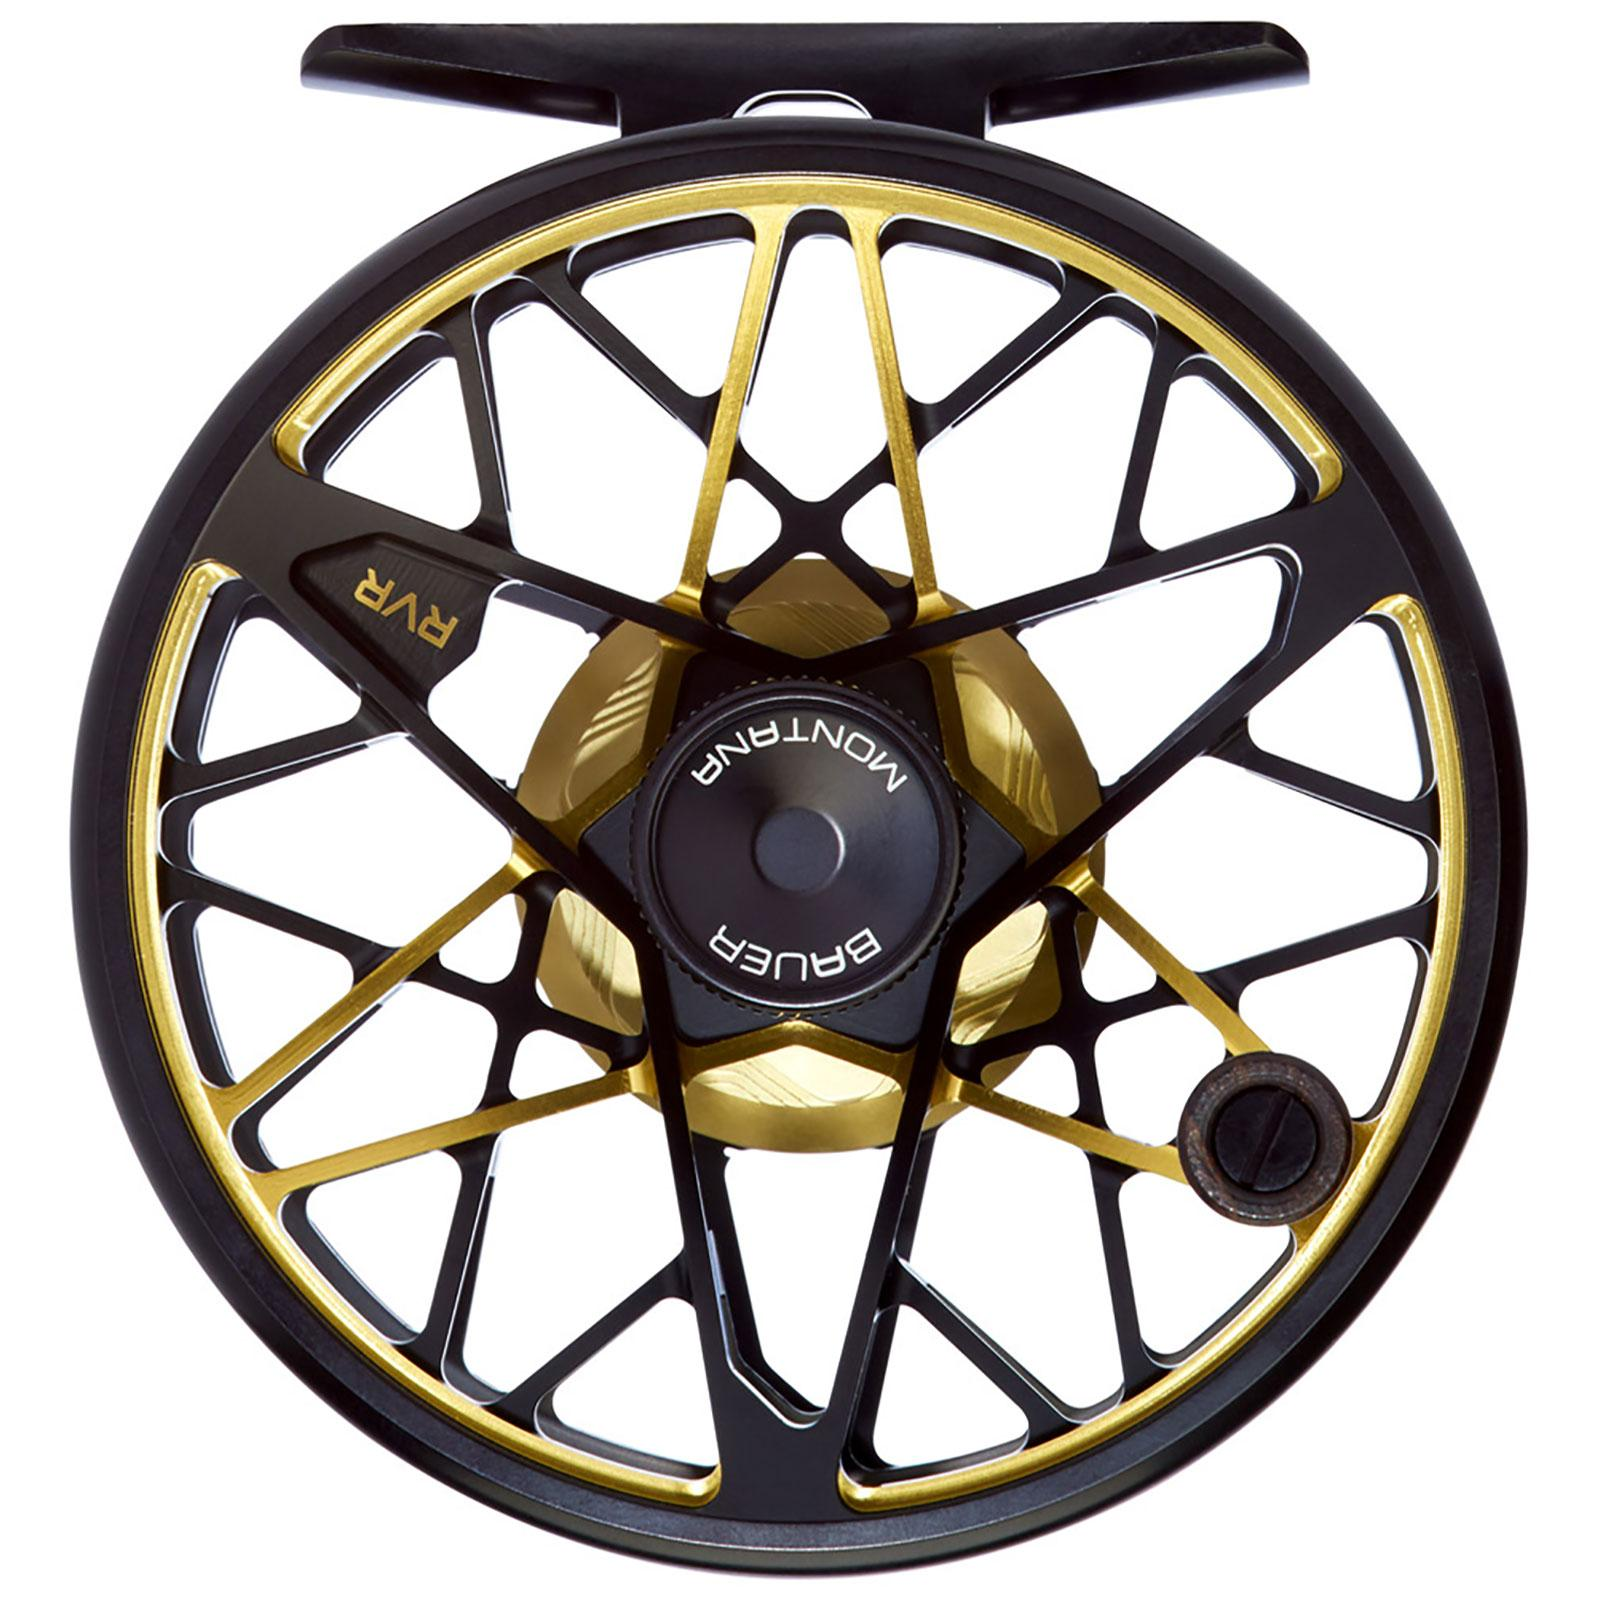 Bauer RVR River Fly Reel